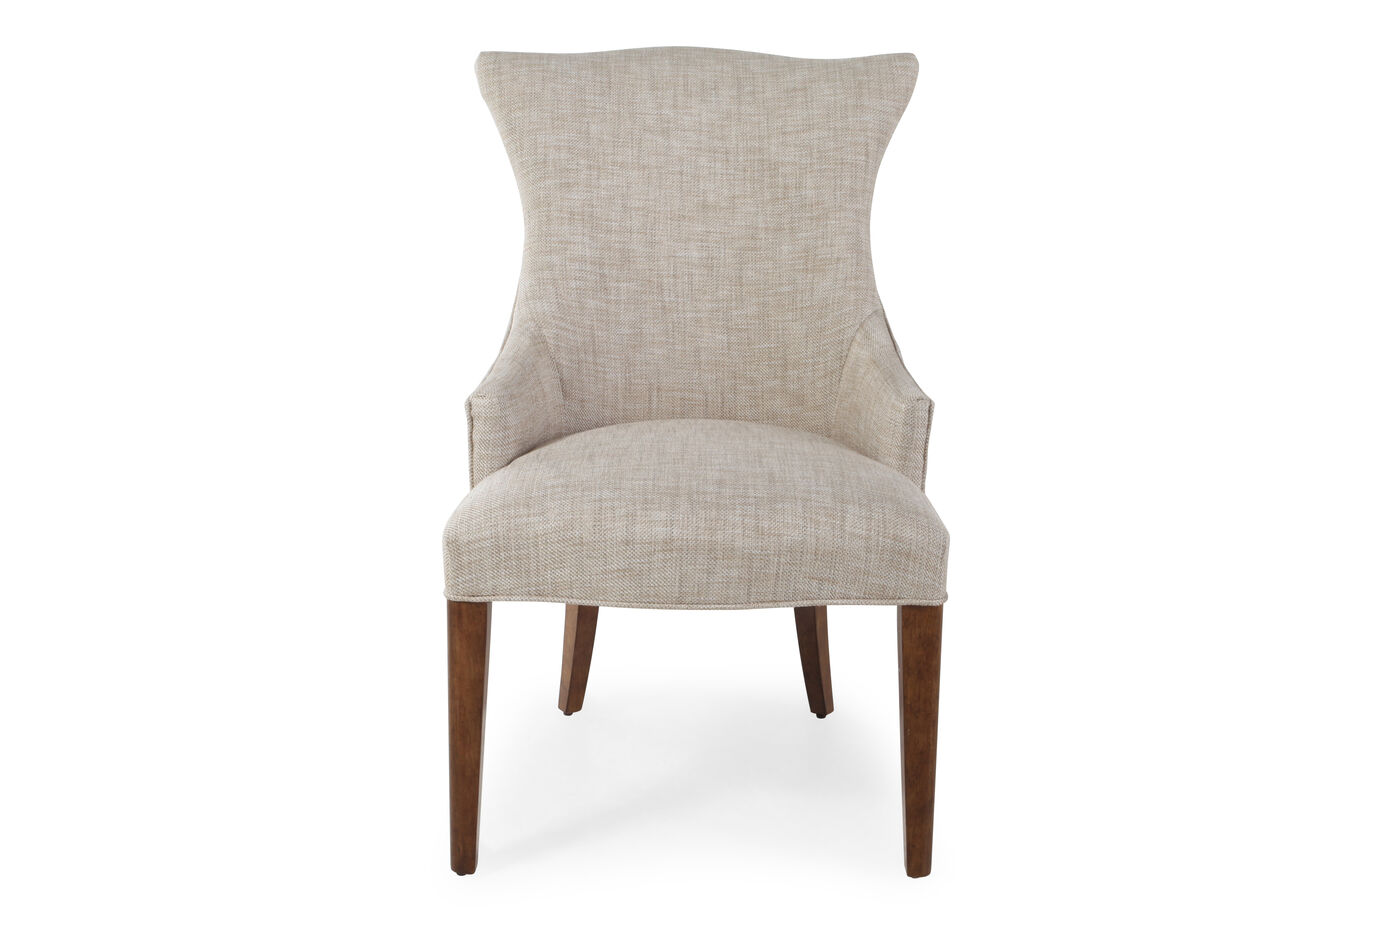 Wing chair bernhardt - Bernhardt Soho Luxe Dining Upholstered Arm Chair